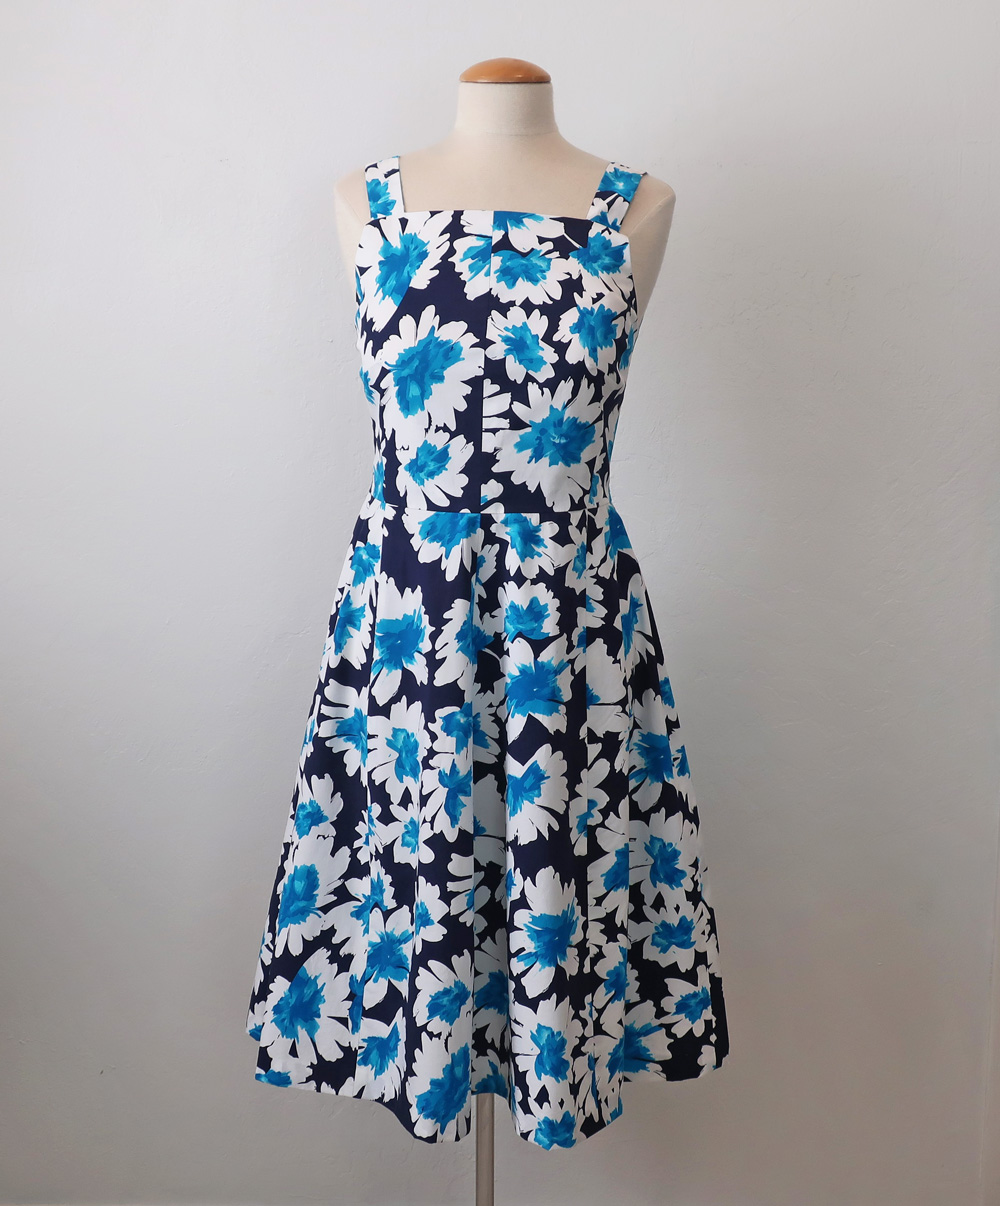 Burda blue white dress 3